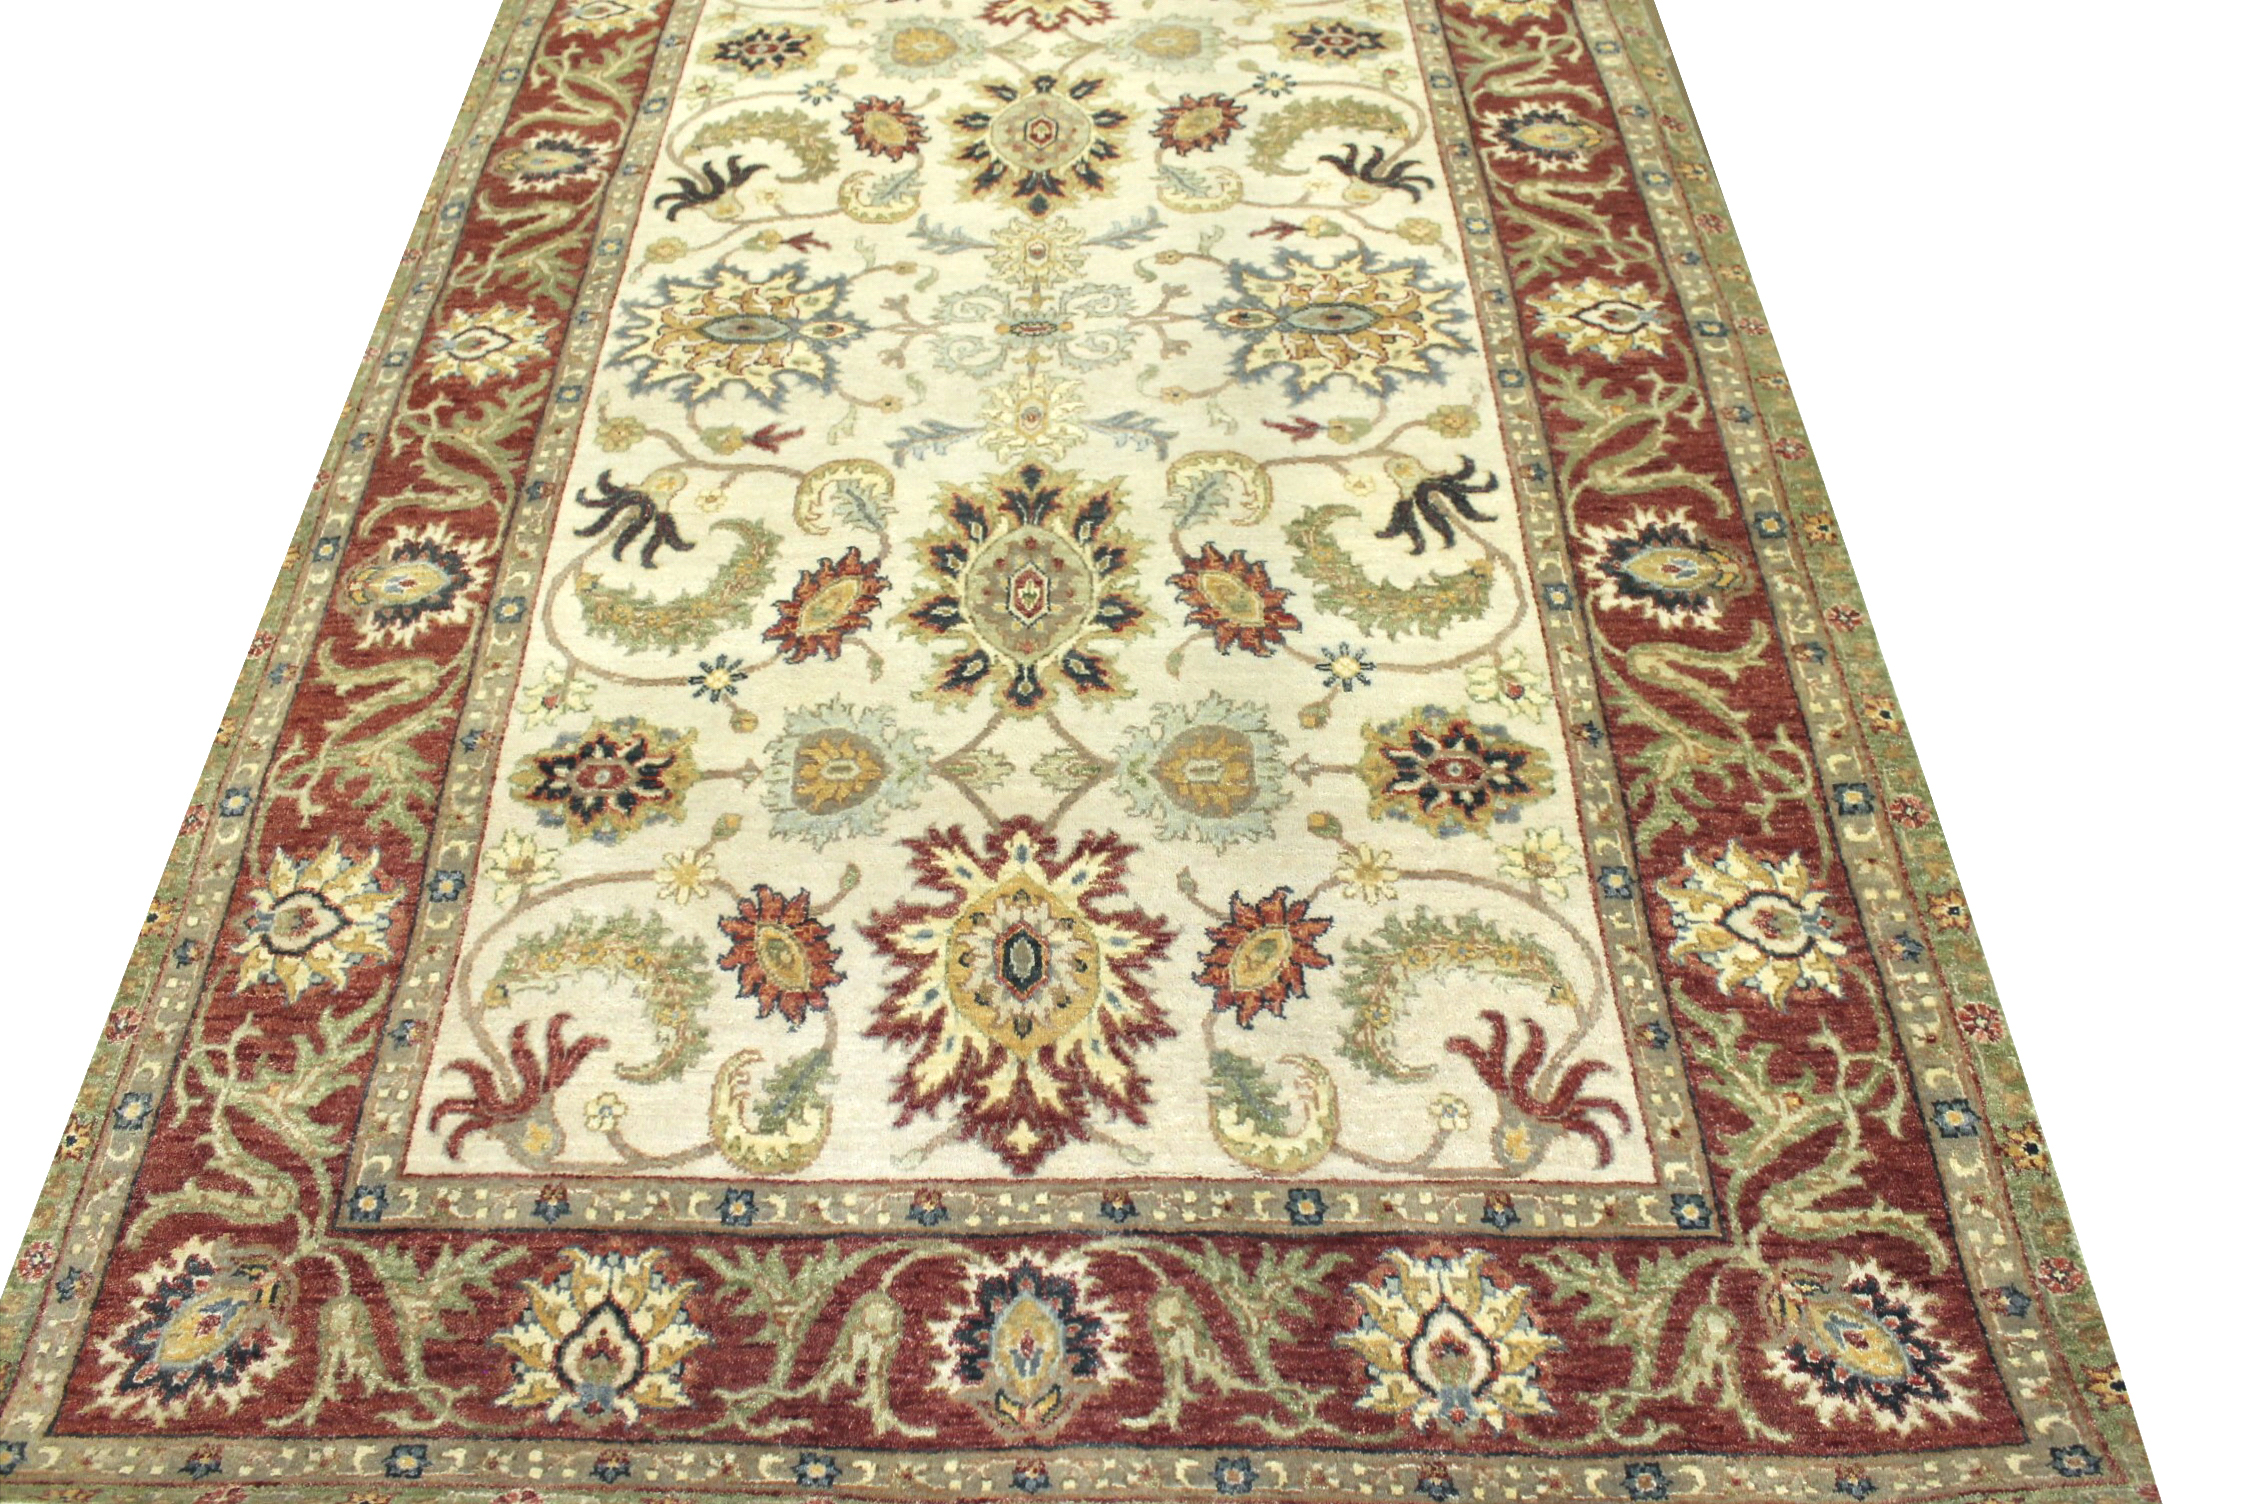 5x7/8 Traditional Hand Knotted Wool Area Rug - MR022878